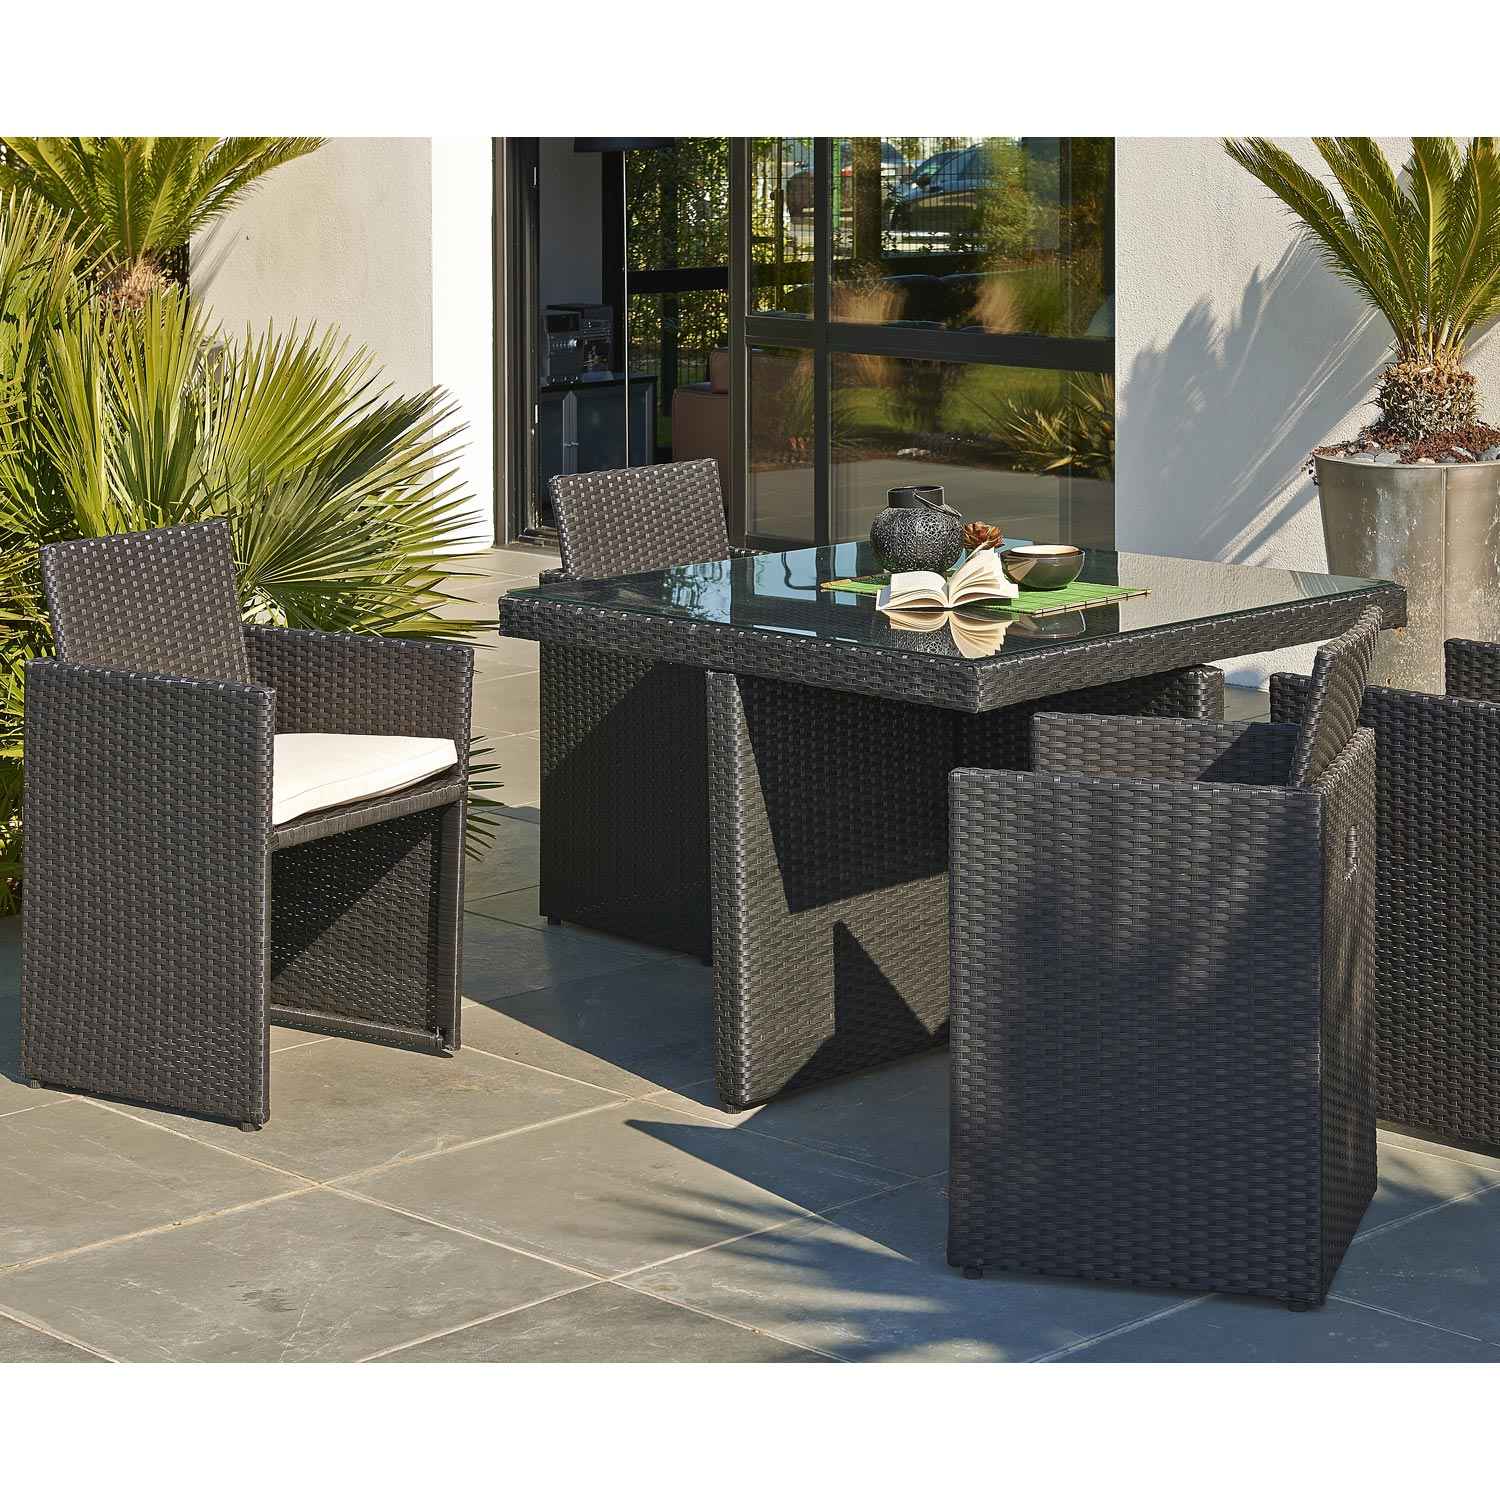 salon de jardin encastrable r sine tress e noir 4. Black Bedroom Furniture Sets. Home Design Ideas